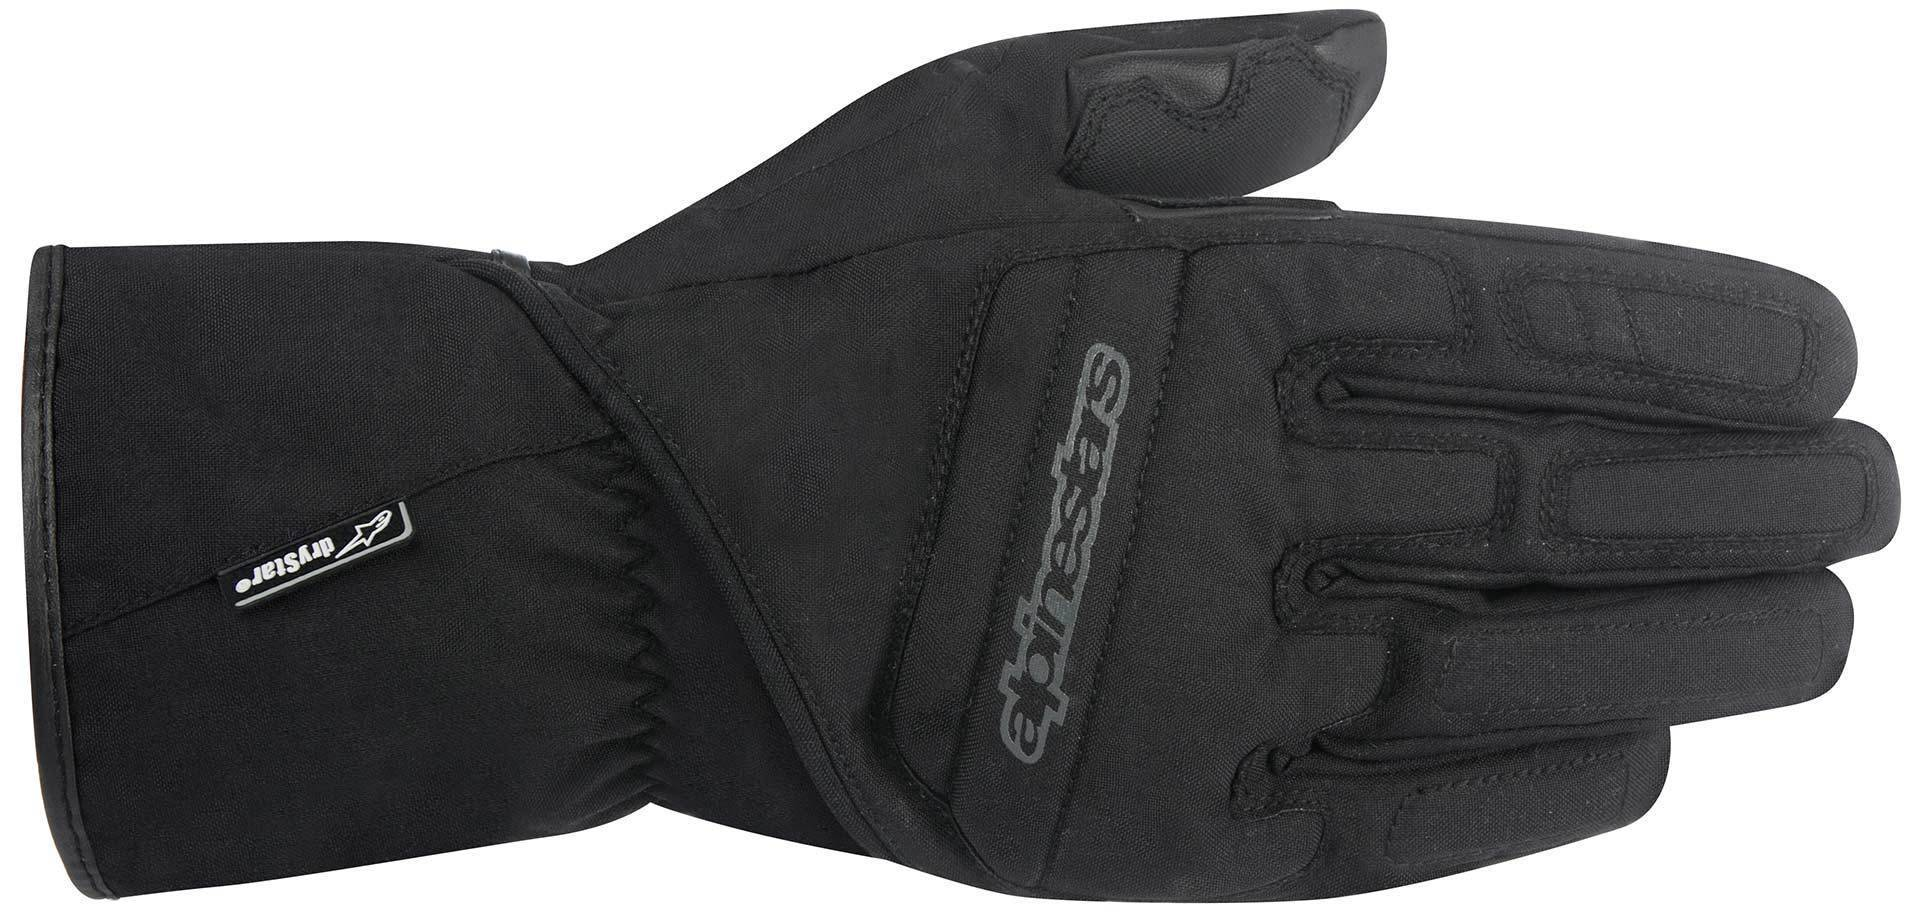 Alpinestars SR-3 Drystar Waterproof Gloves 2016 Black 2XL